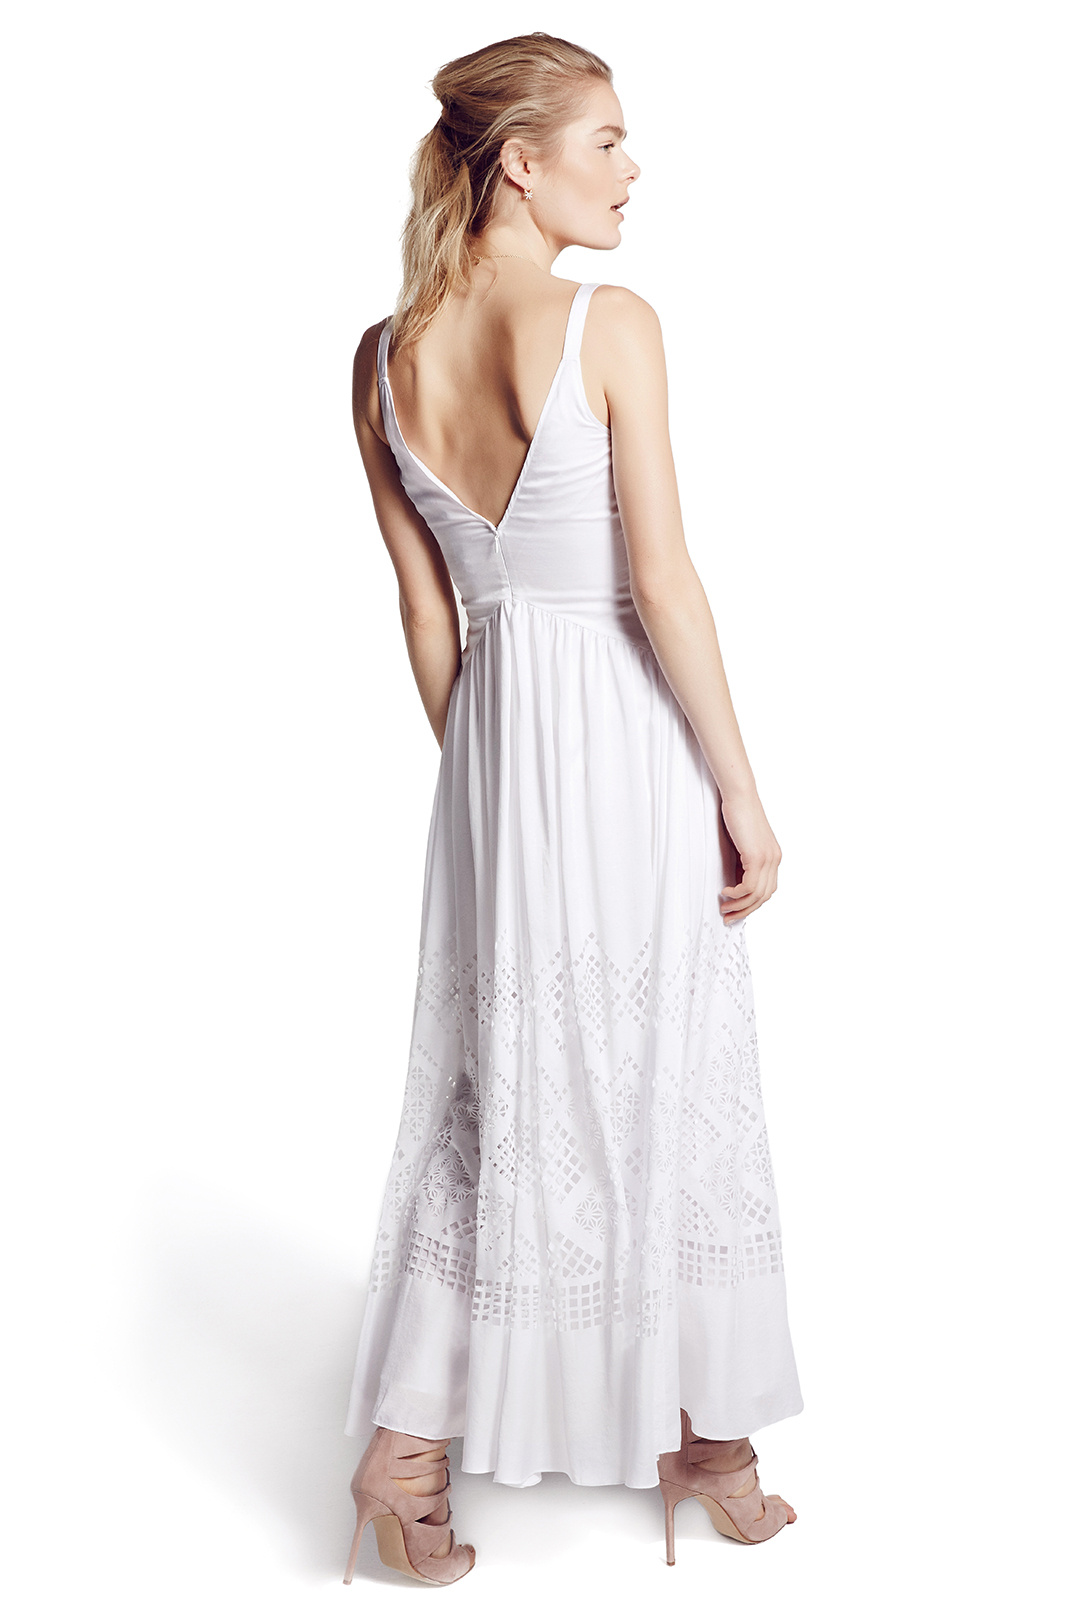 What to wear designer dresses to rent for any kind of for Rent wedding dress london